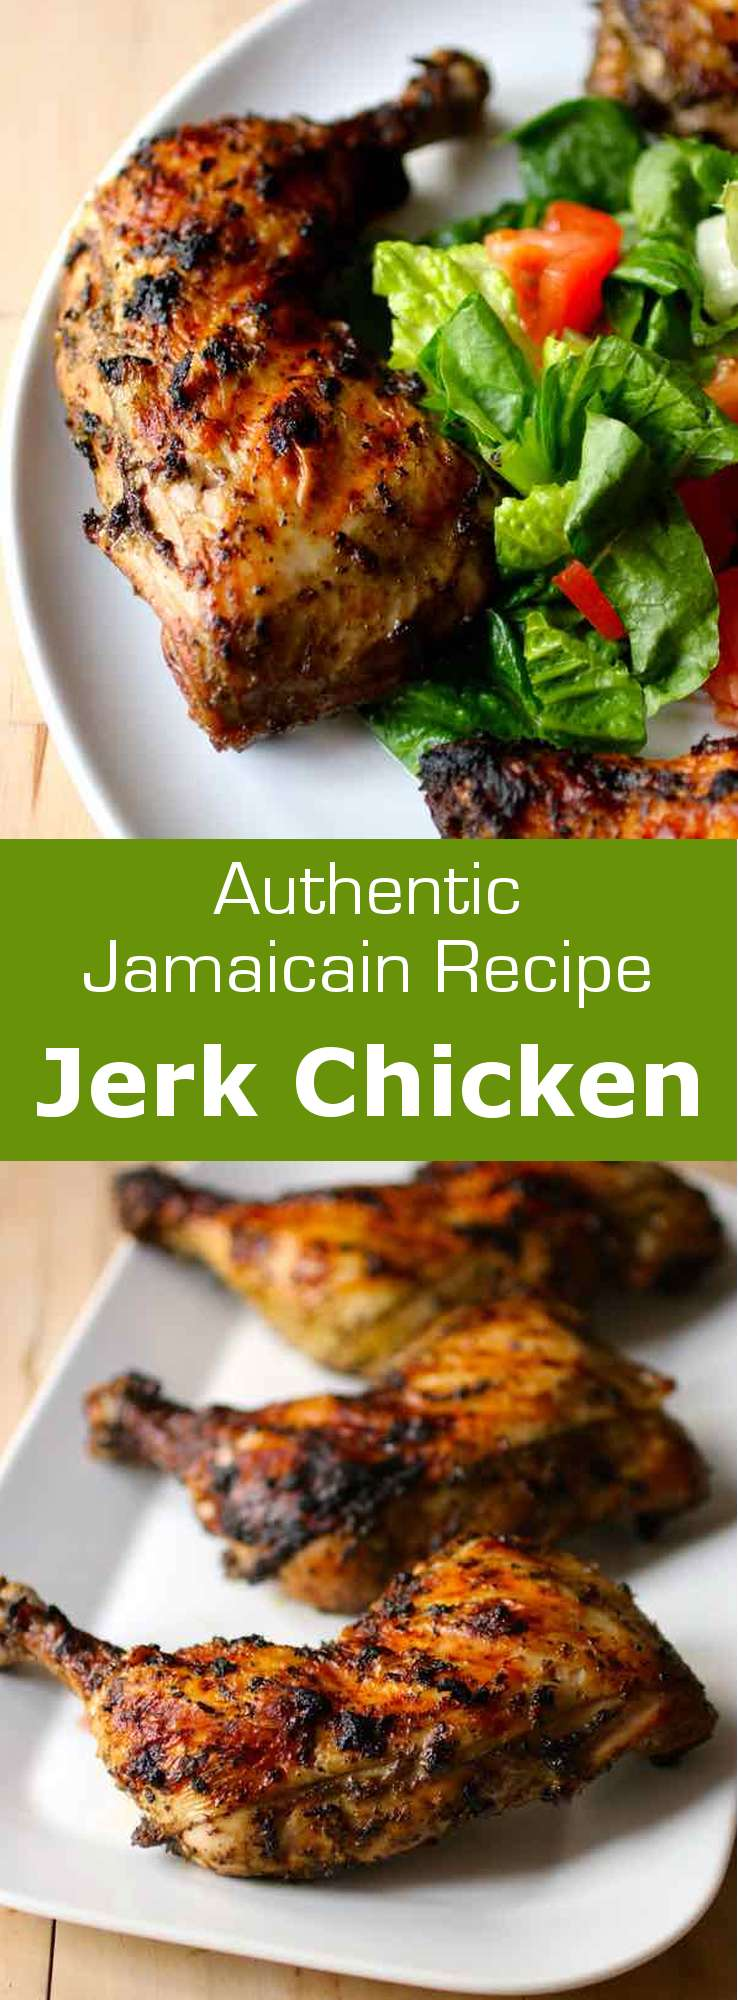 Jerk chicken is a traditional Jamaican recipe which consists in chicken marinated in a spicy blend for a few hours and then grilled on a BBQ. #Jamaica #BBQ #196flavors